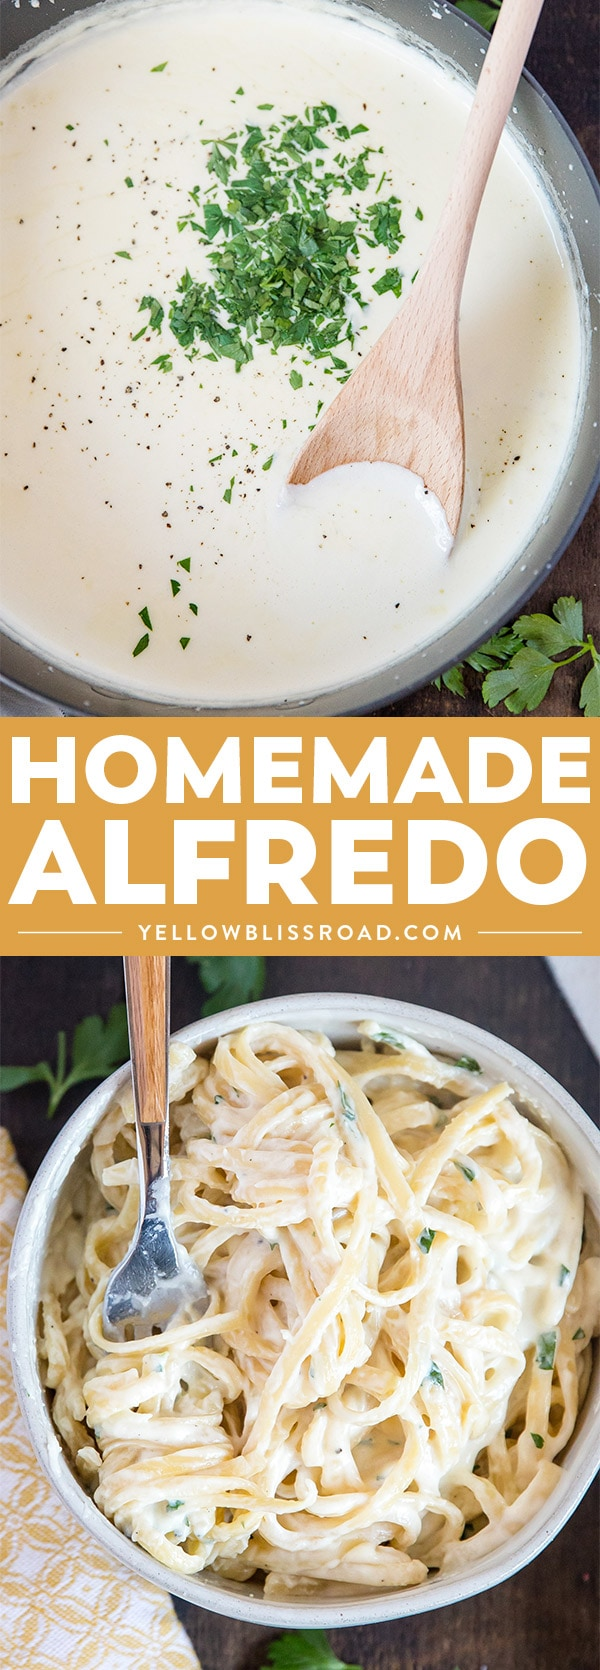 Homemade Alfredo Sauce is so creamy and flavorful, and so simple to make from scratch! Great for pasta, pizza and more! Collage